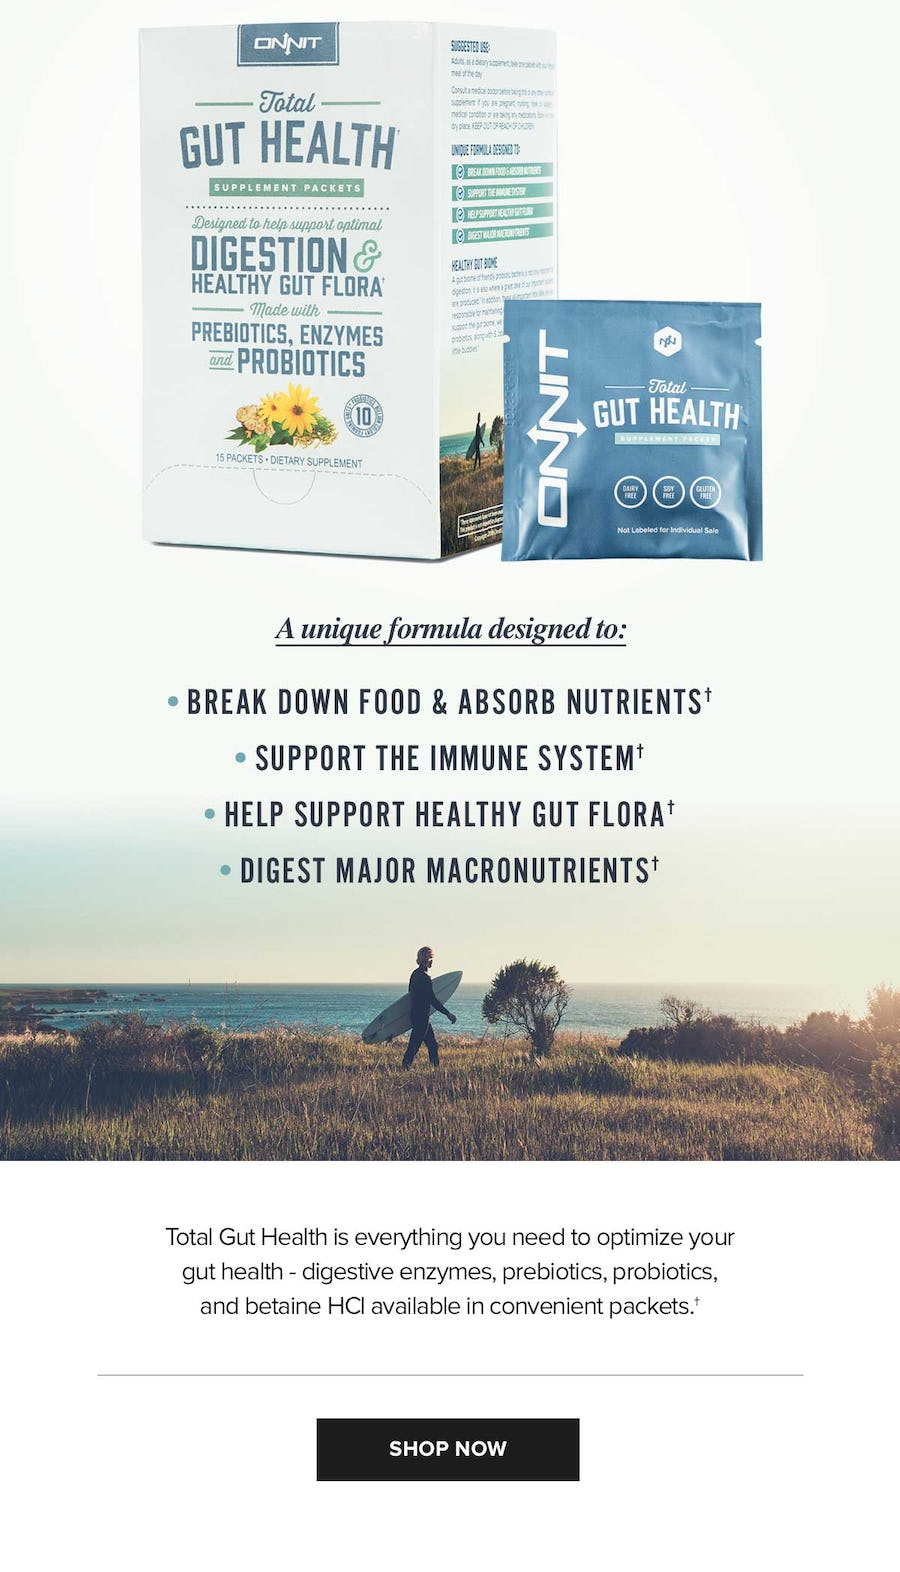 Onnit's Total Gut Health